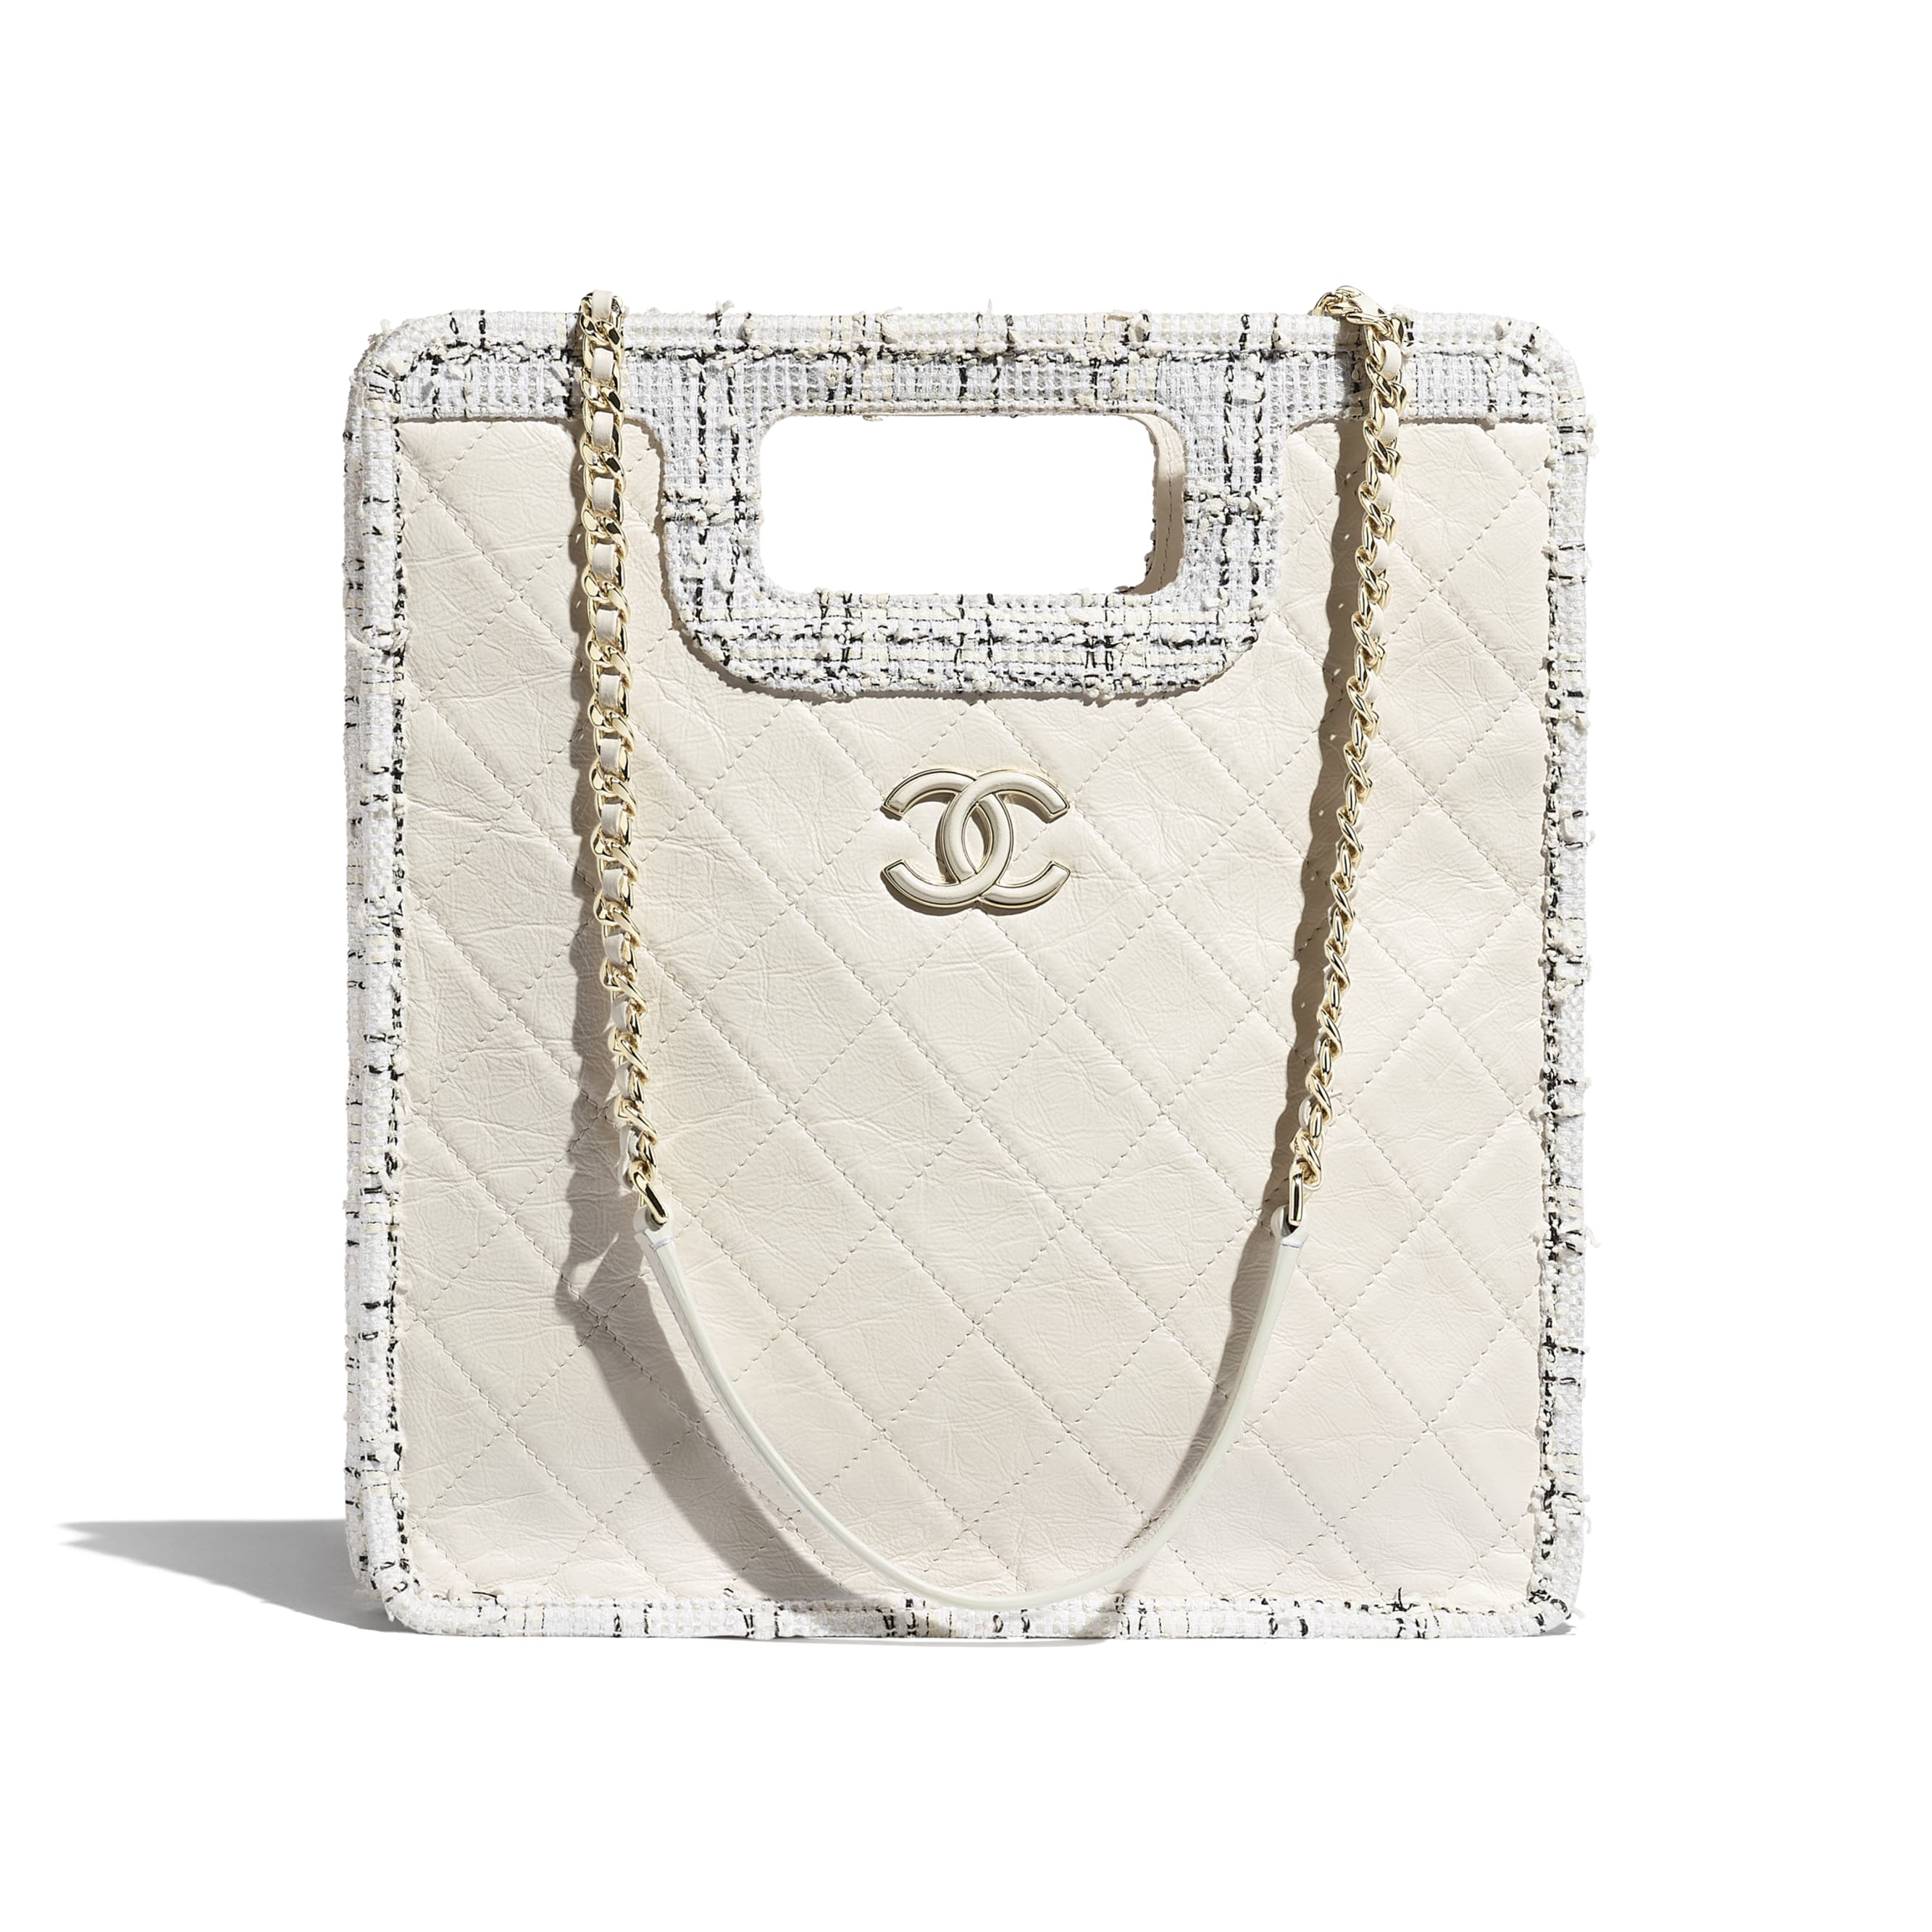 Small Shopping Bag - White, Black & Ecru - Aged Calfskin, Tweed & Gold-Tone Metal - CHANEL - Default view - see standard sized version